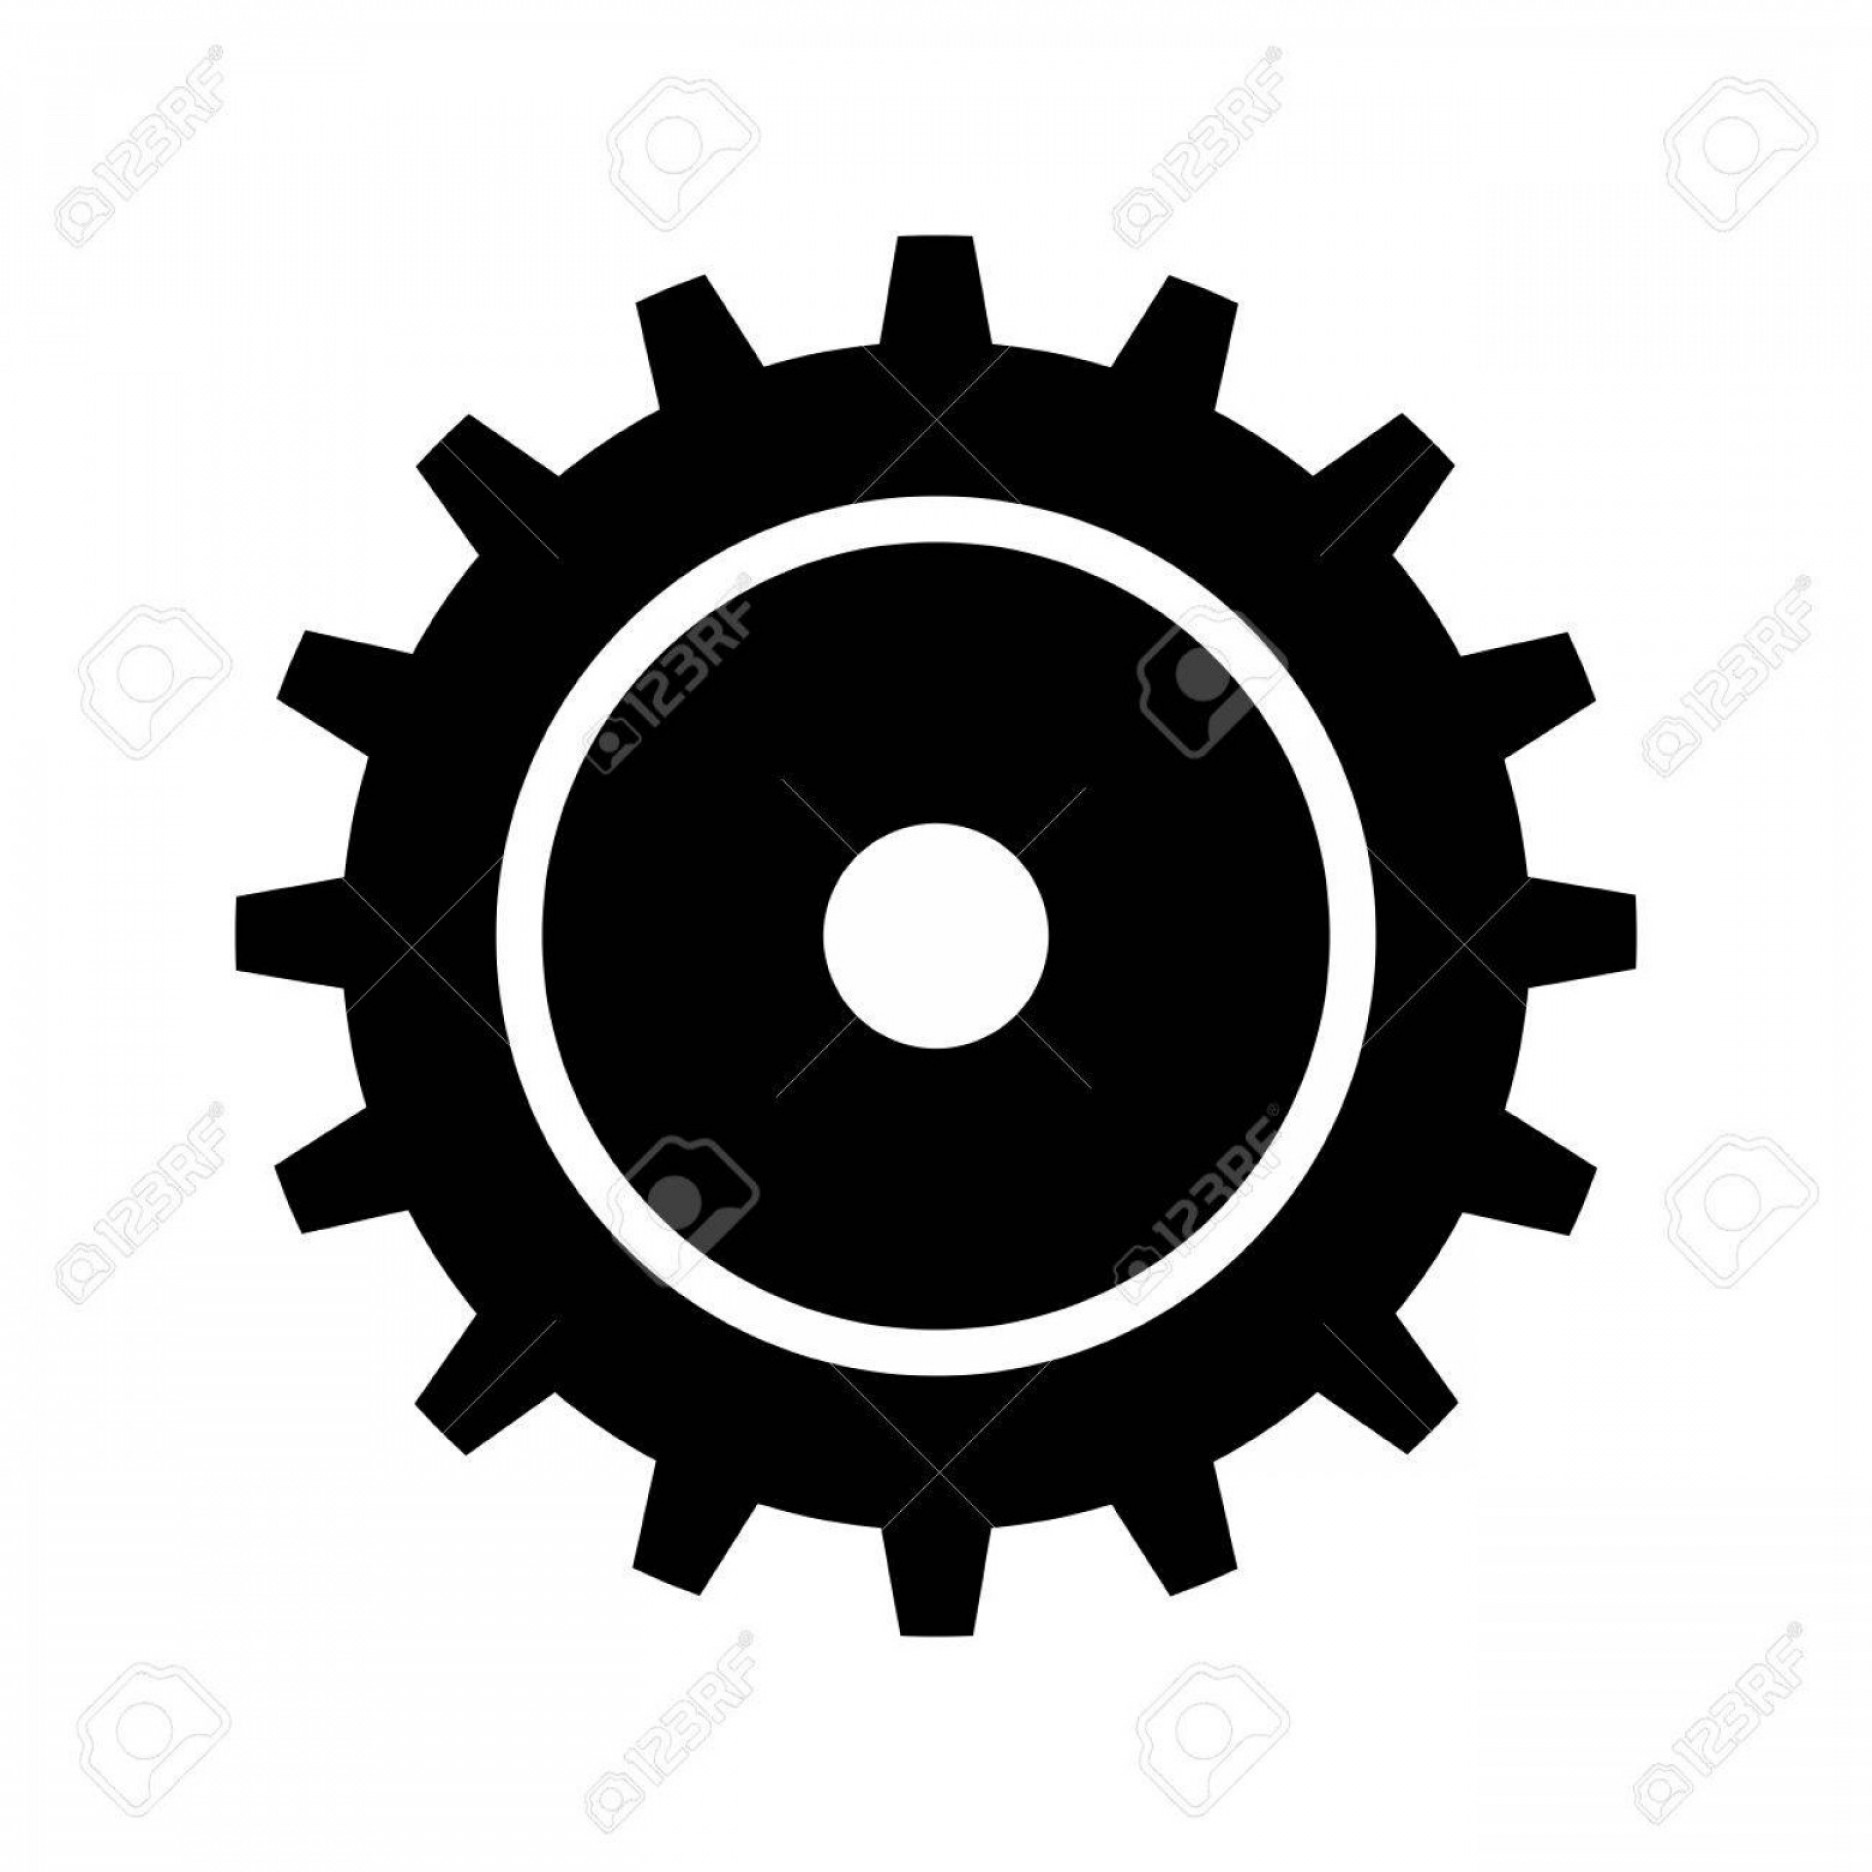 Vector Gear Graphics: Photostock Vector Gear Cogwheel Device Mechanical Power Transmission Silhouette Vector Illustration